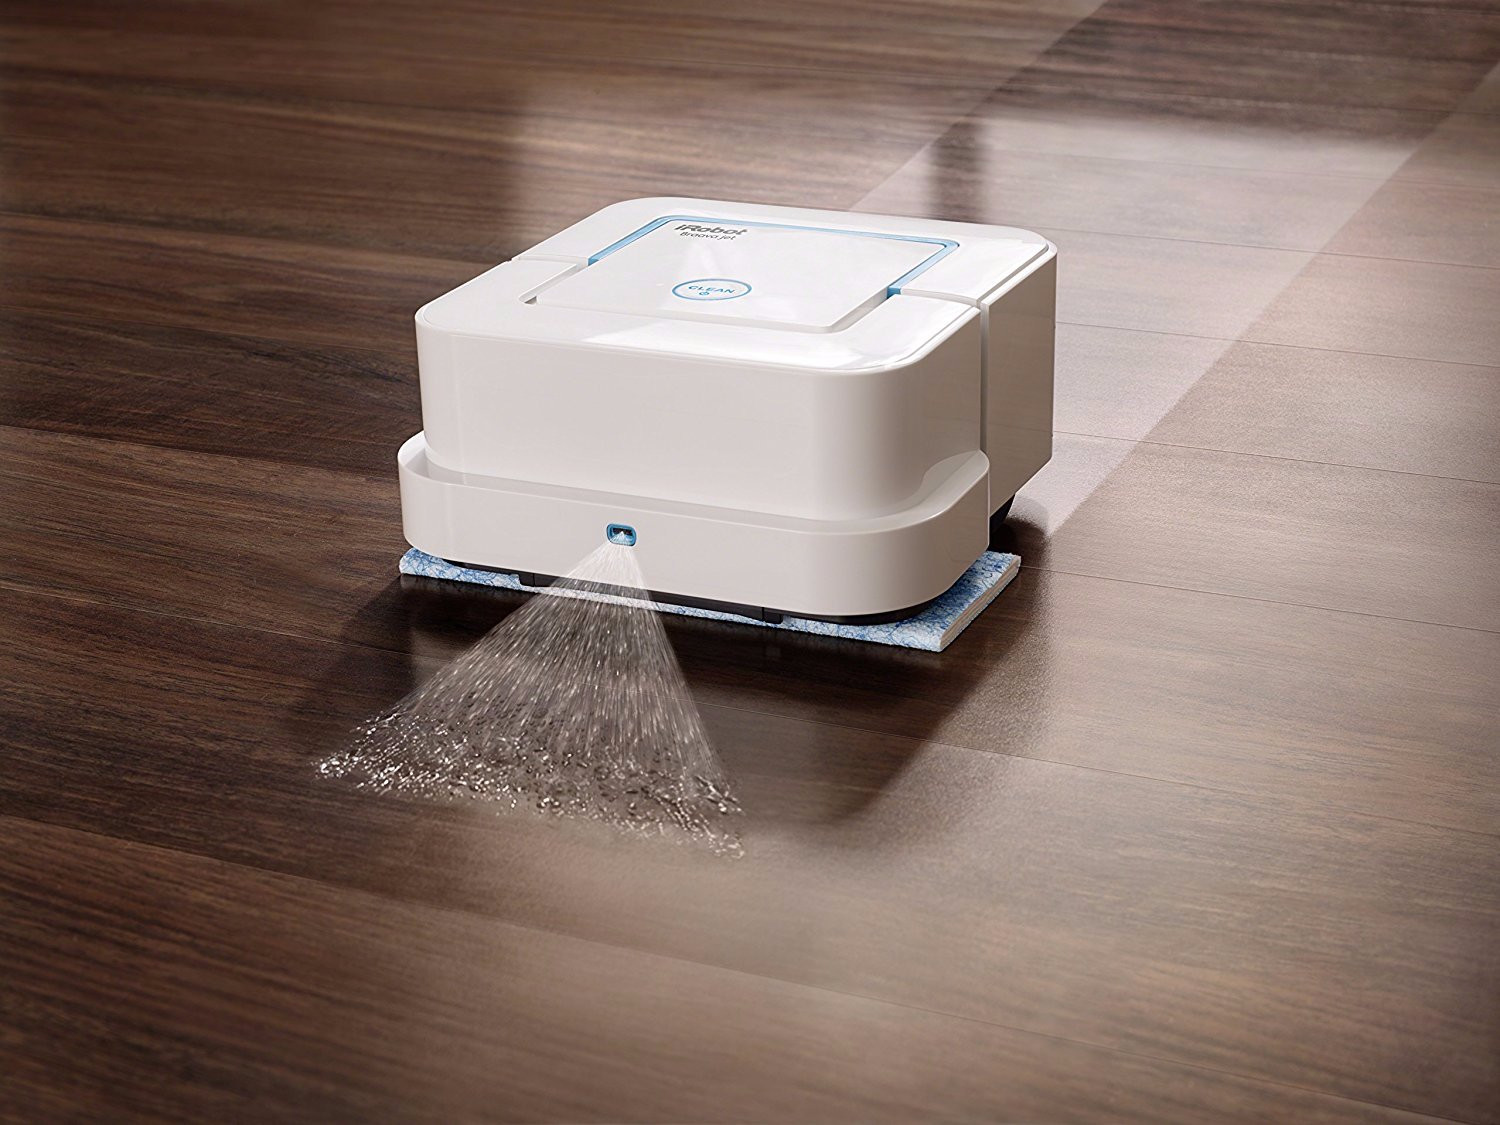 discount hardwood flooring los angeles of 12 smart home gadgets that practically clean the house for you regarding irobot braava